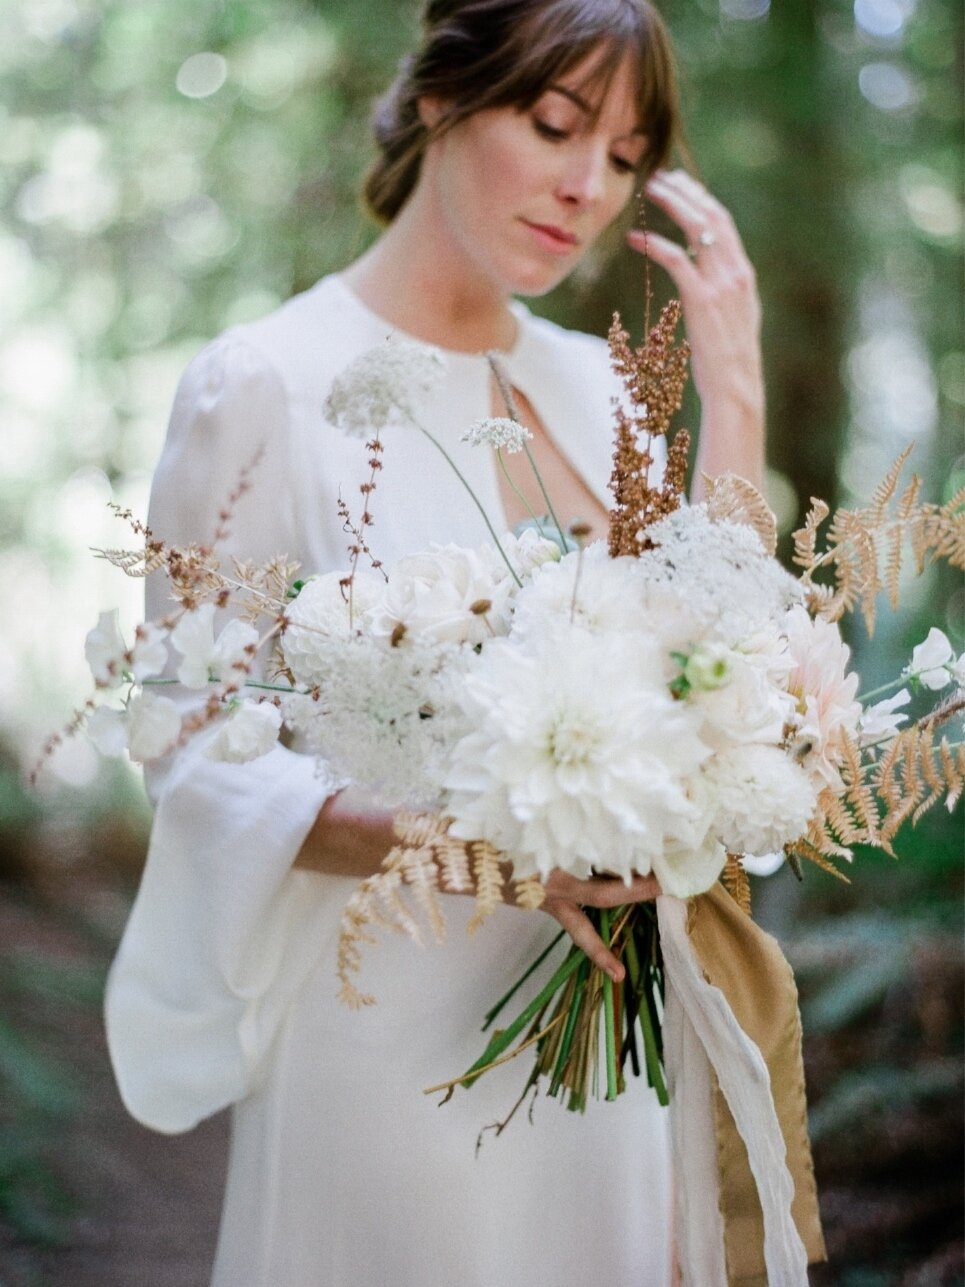 Destination wedding photographer Paris Madalina Sheldon